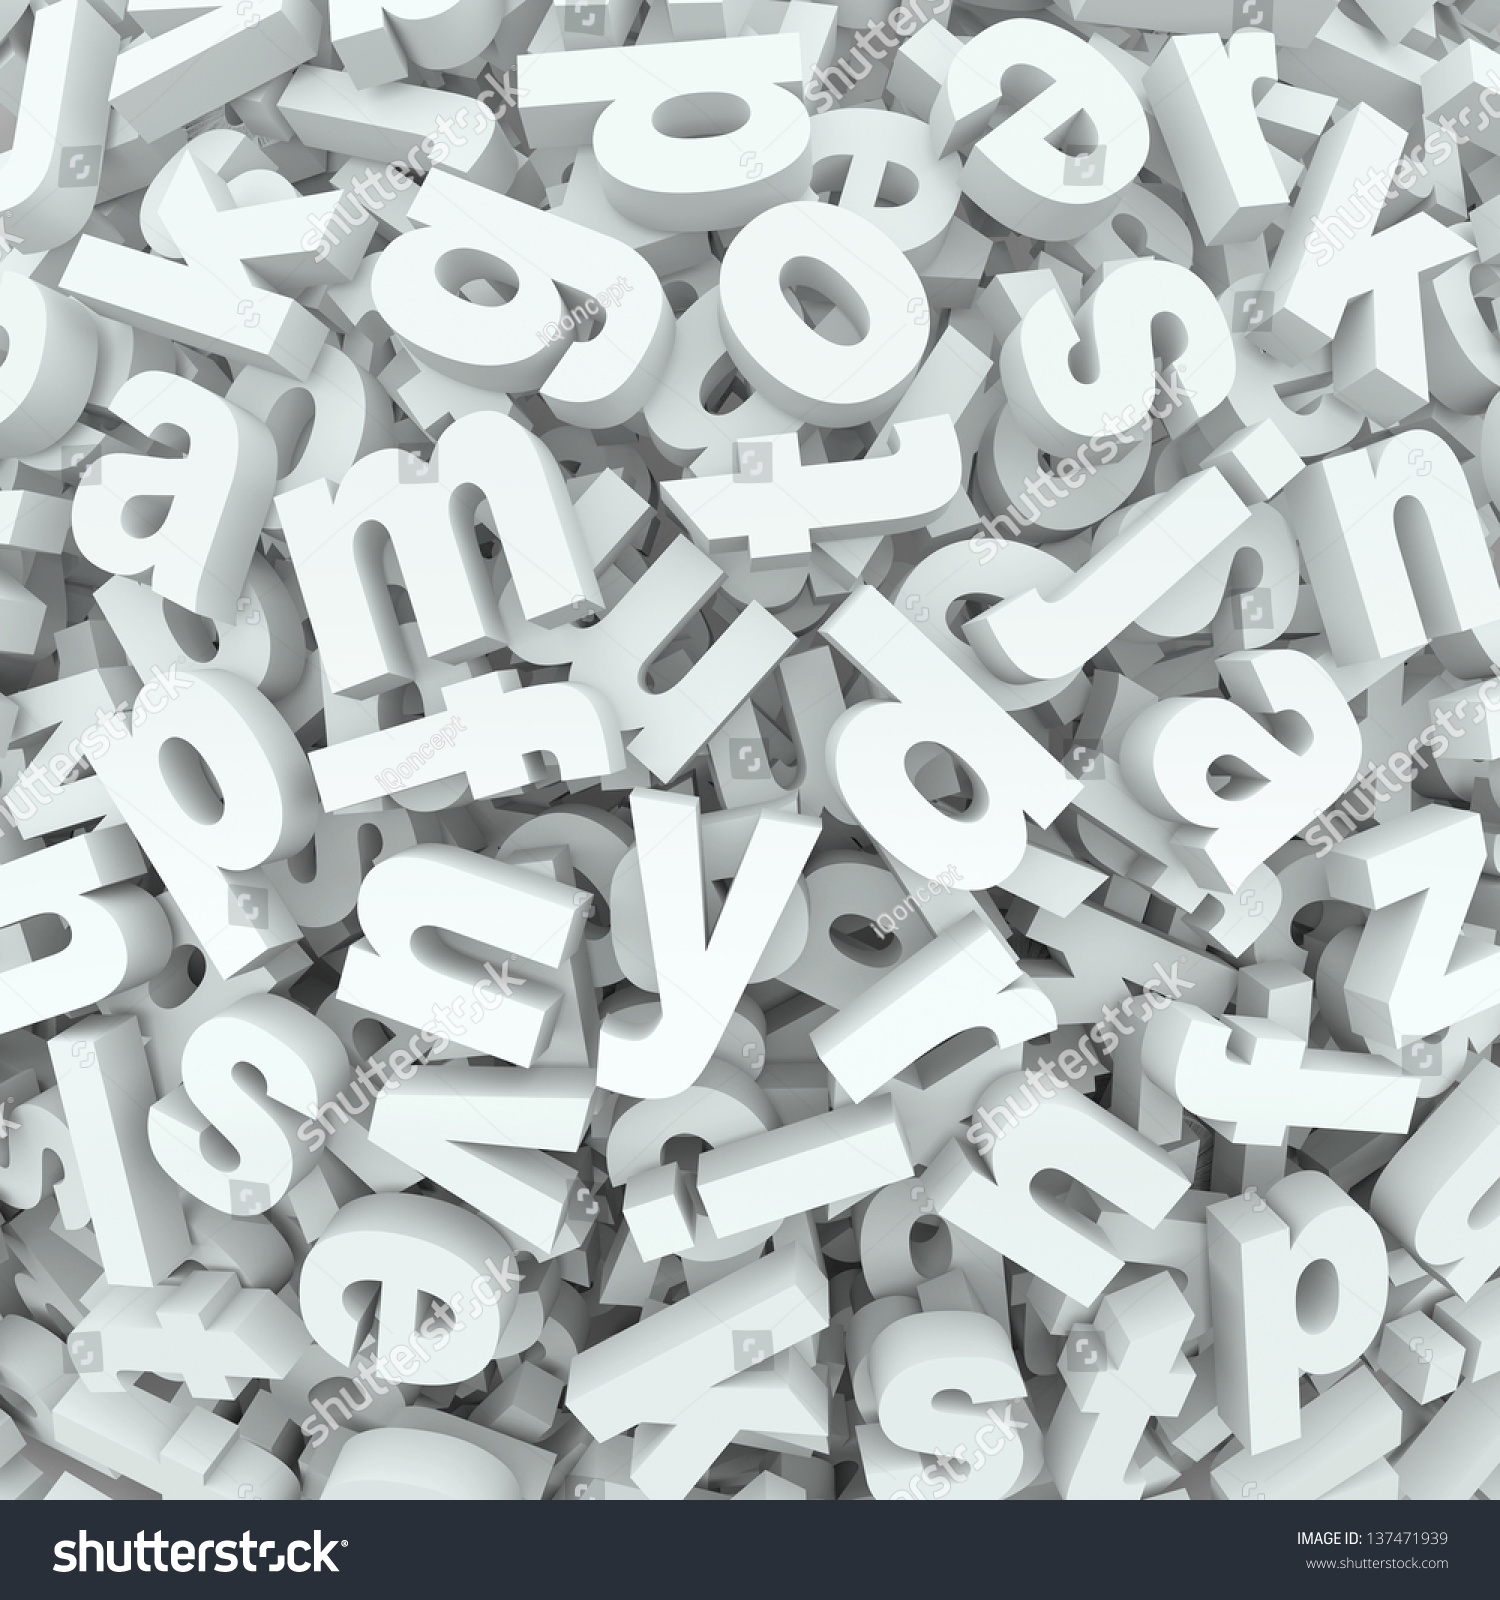 Many Alphabet Letters In A Jumbled Mess Of A 3d Display Or